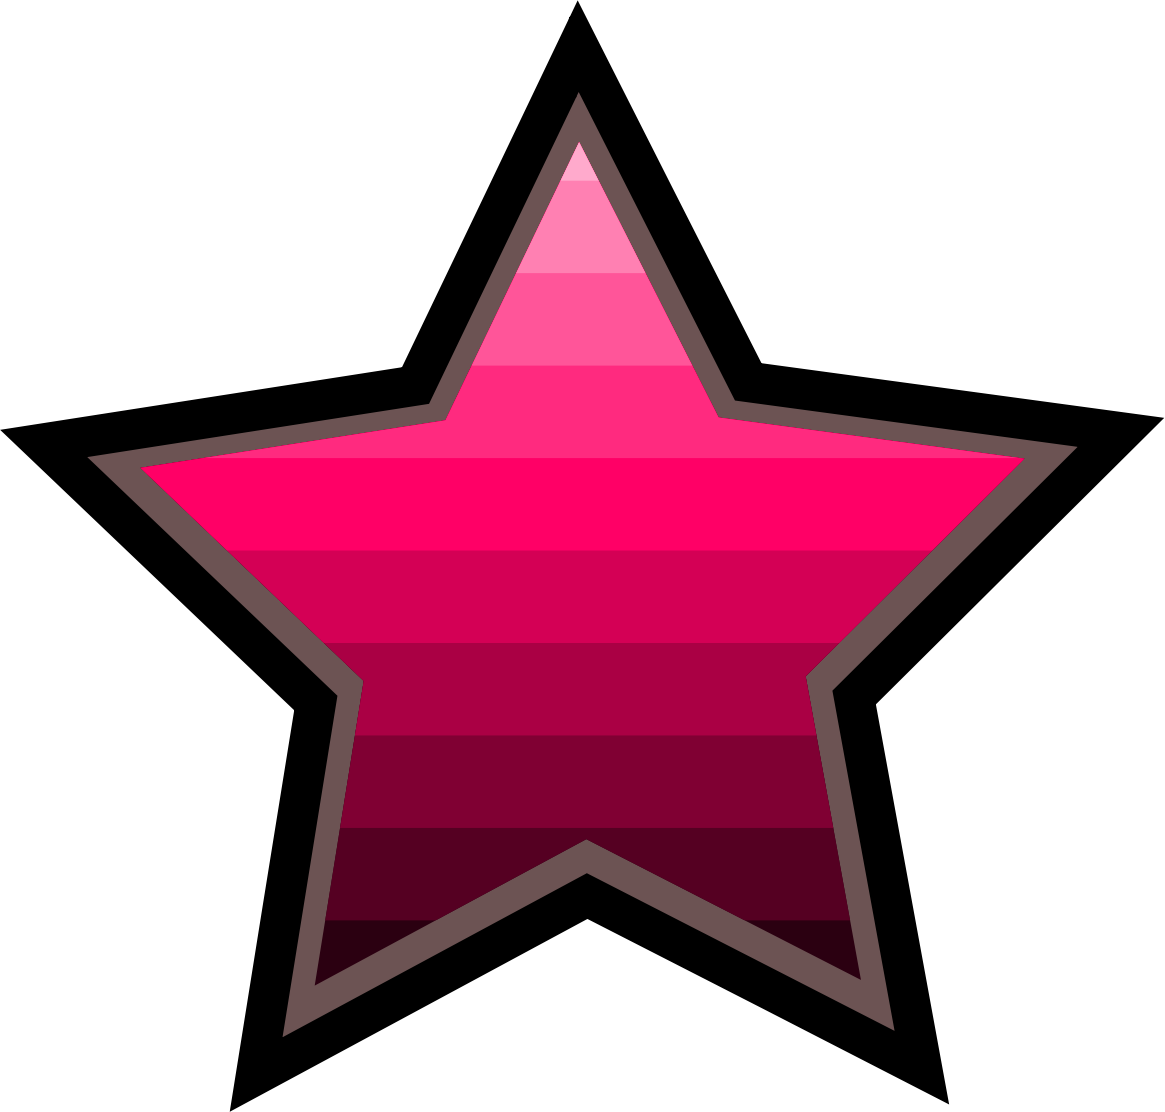 Pink five point star clipart graphic library stock Clipart - ombre star graphic library stock